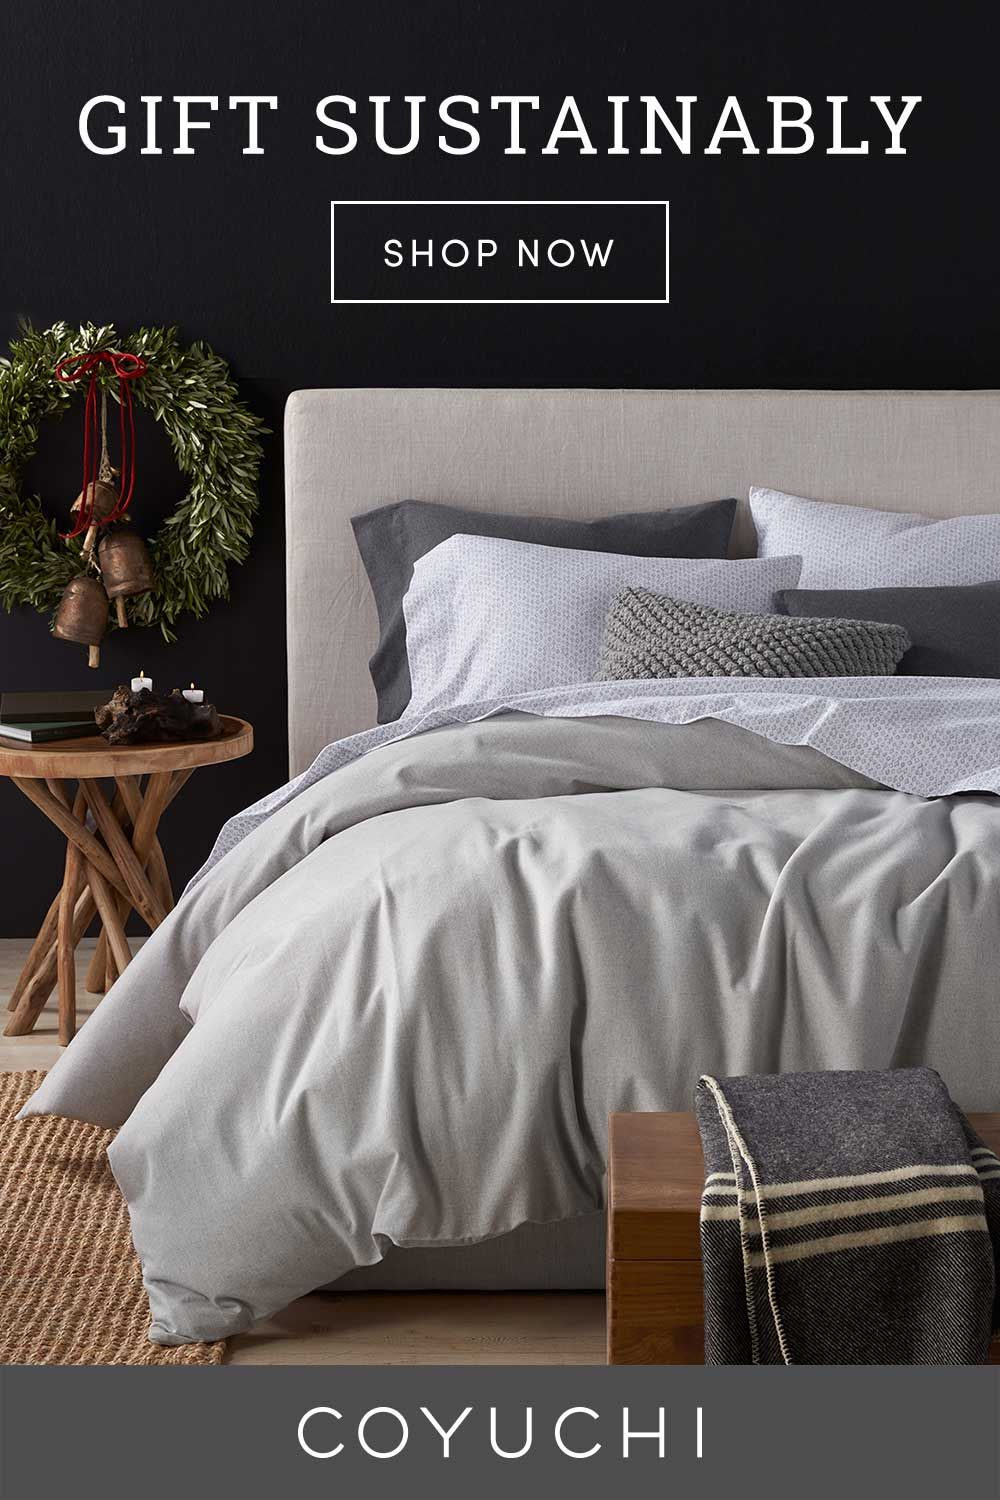 Your Organic Bedroom: Gift Warmth This Holiday Season With Our Soft, Organic